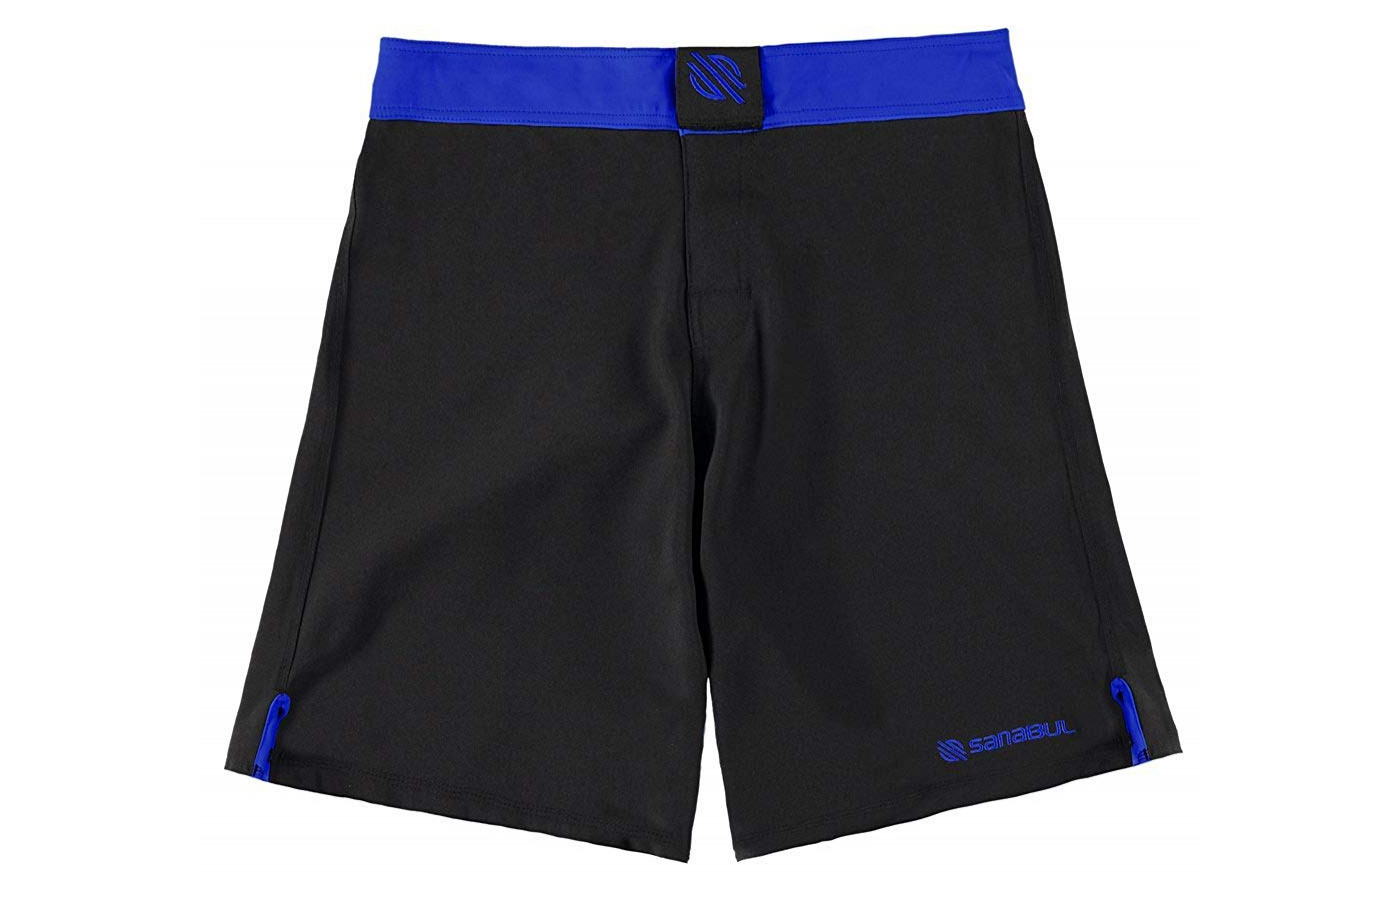 sanabul trunks blue flat